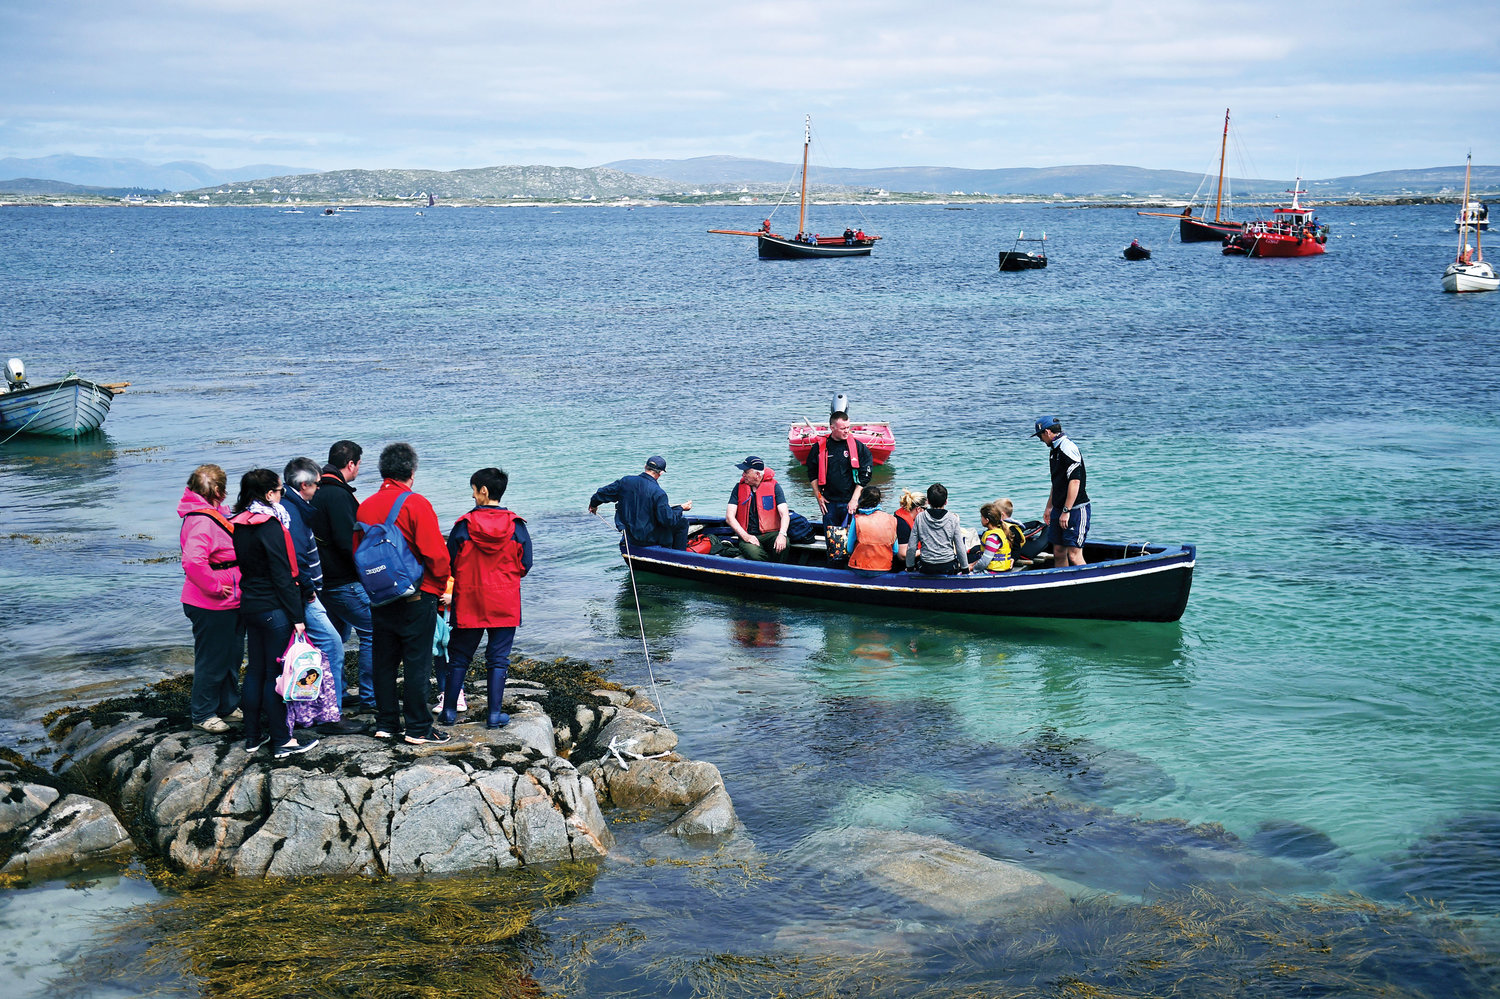 VOYAGE—Seafarers and other worshippers from Carna, Ireland, are seen in 2016 during the annual pilgrimage to MacDara's Island to celebrate Mass in honor of St. MacDara, patron saint of fishermen.